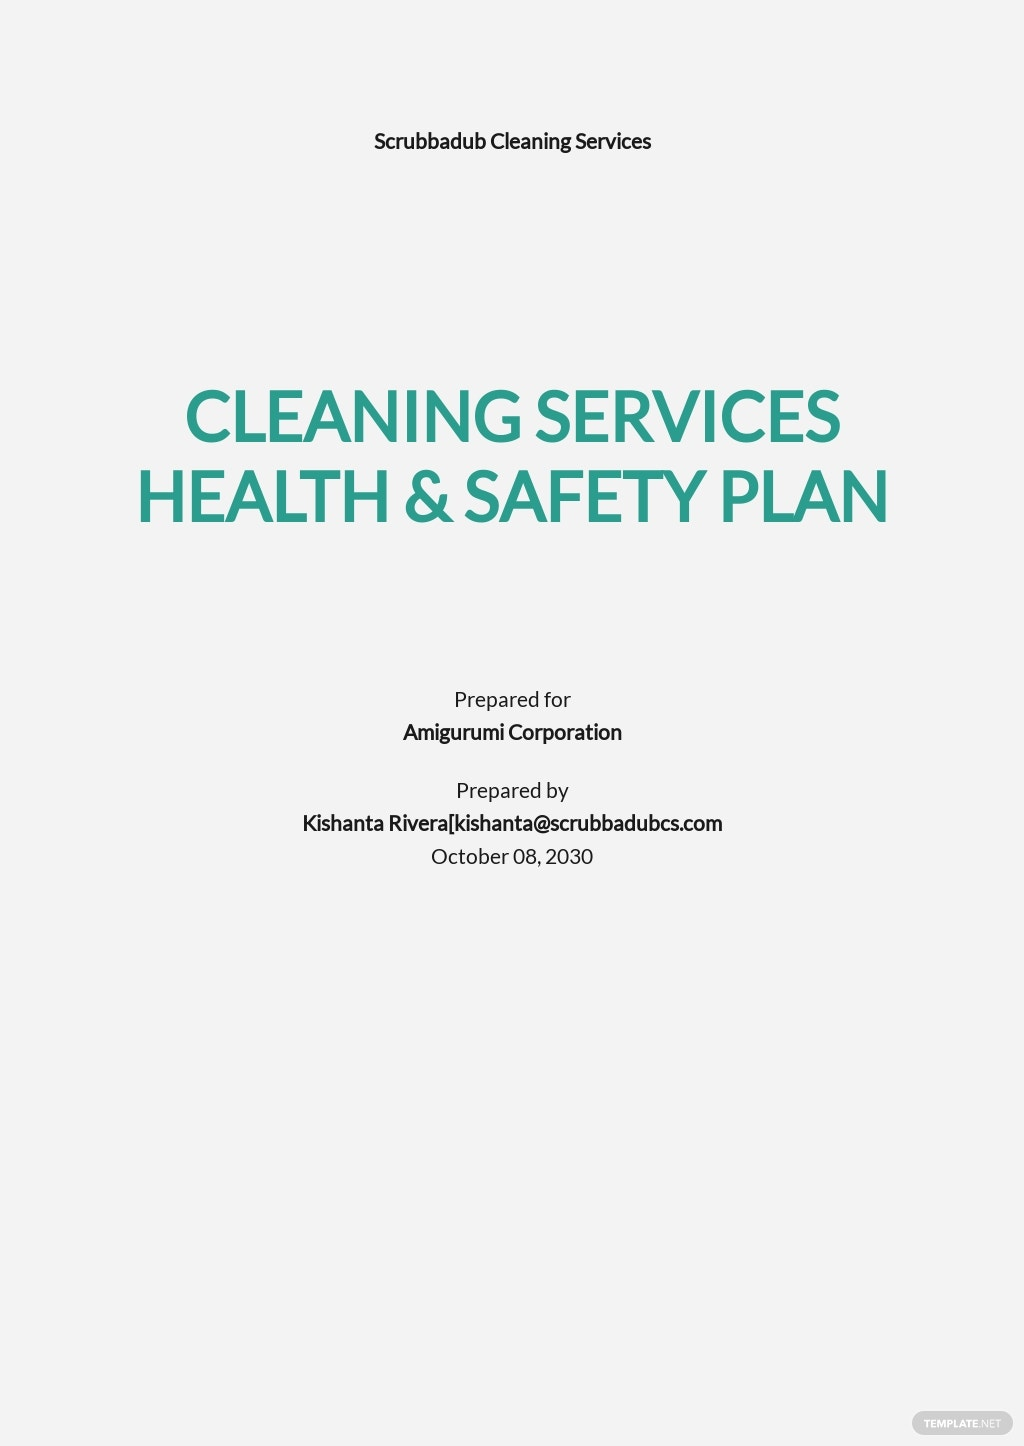 Health and Safety Plan Template for Cleaning Services.jpe